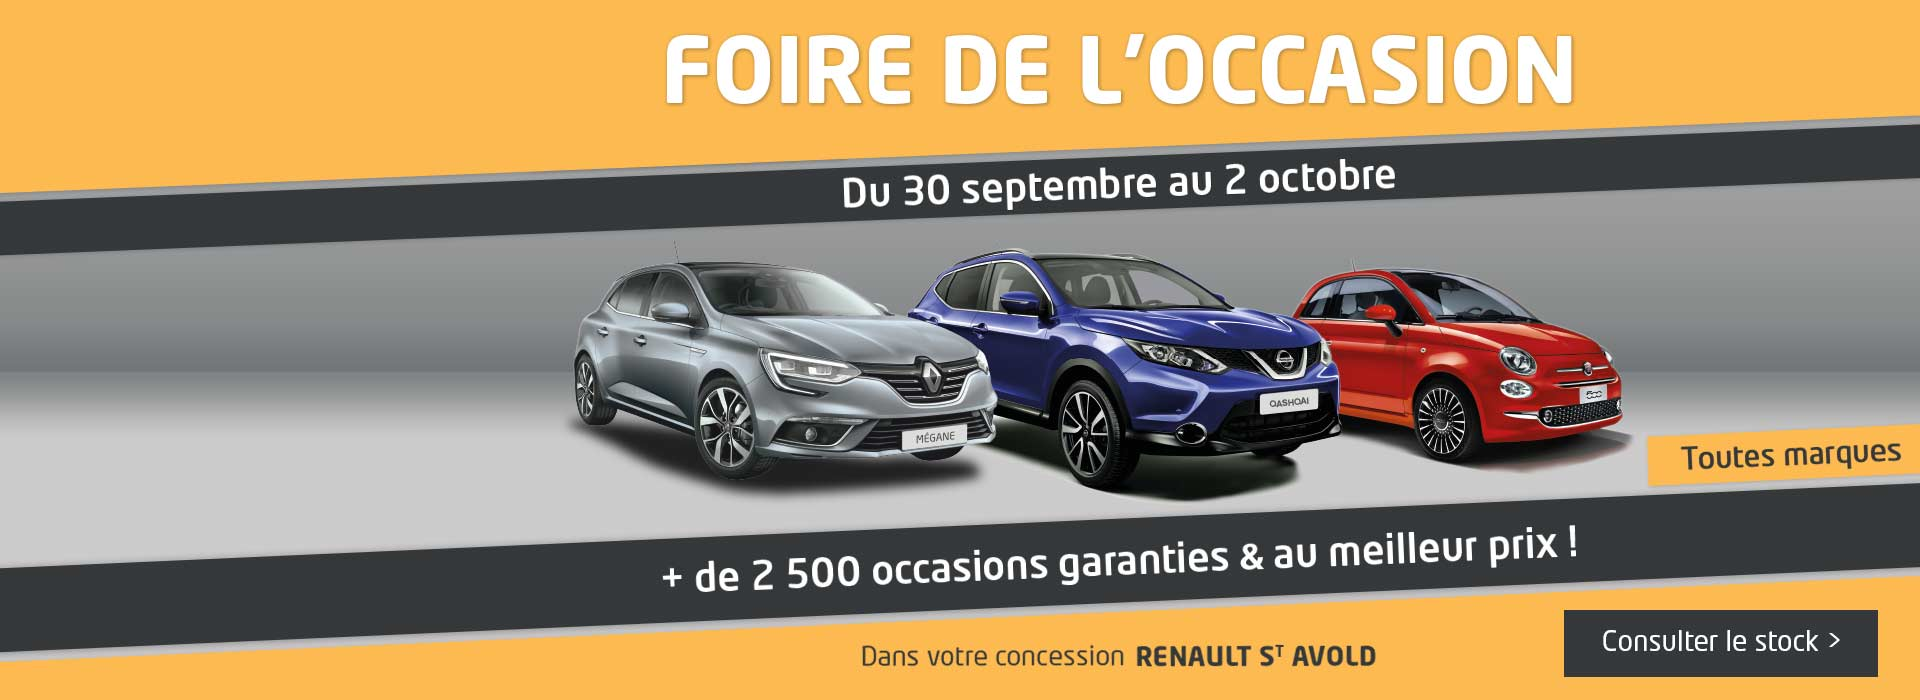 Foire Véhicule Occasion Renault St Avold